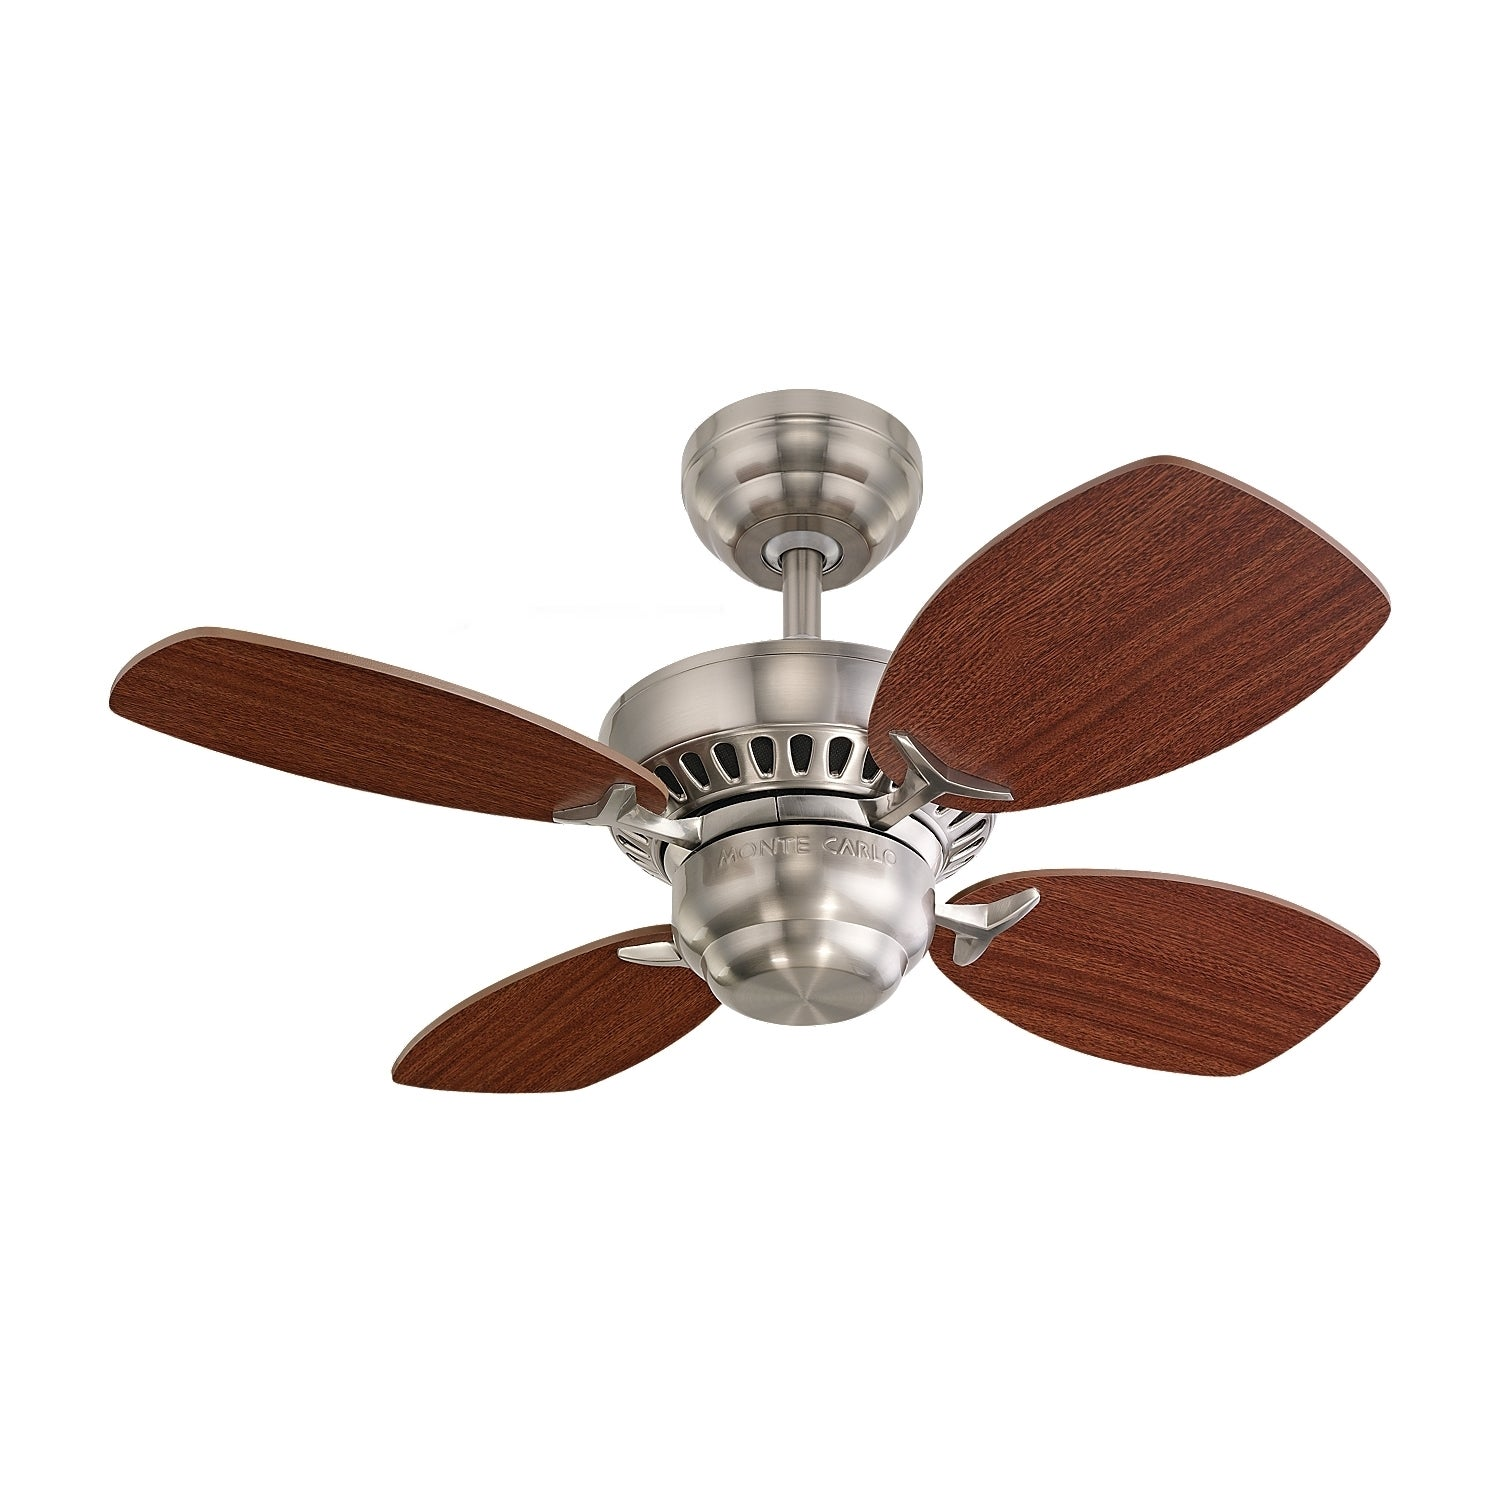 Monte Carlo Colony II Brushed Steel 28-inch Ceiling Fan (28 Colony II Fan - Brushed Steel)